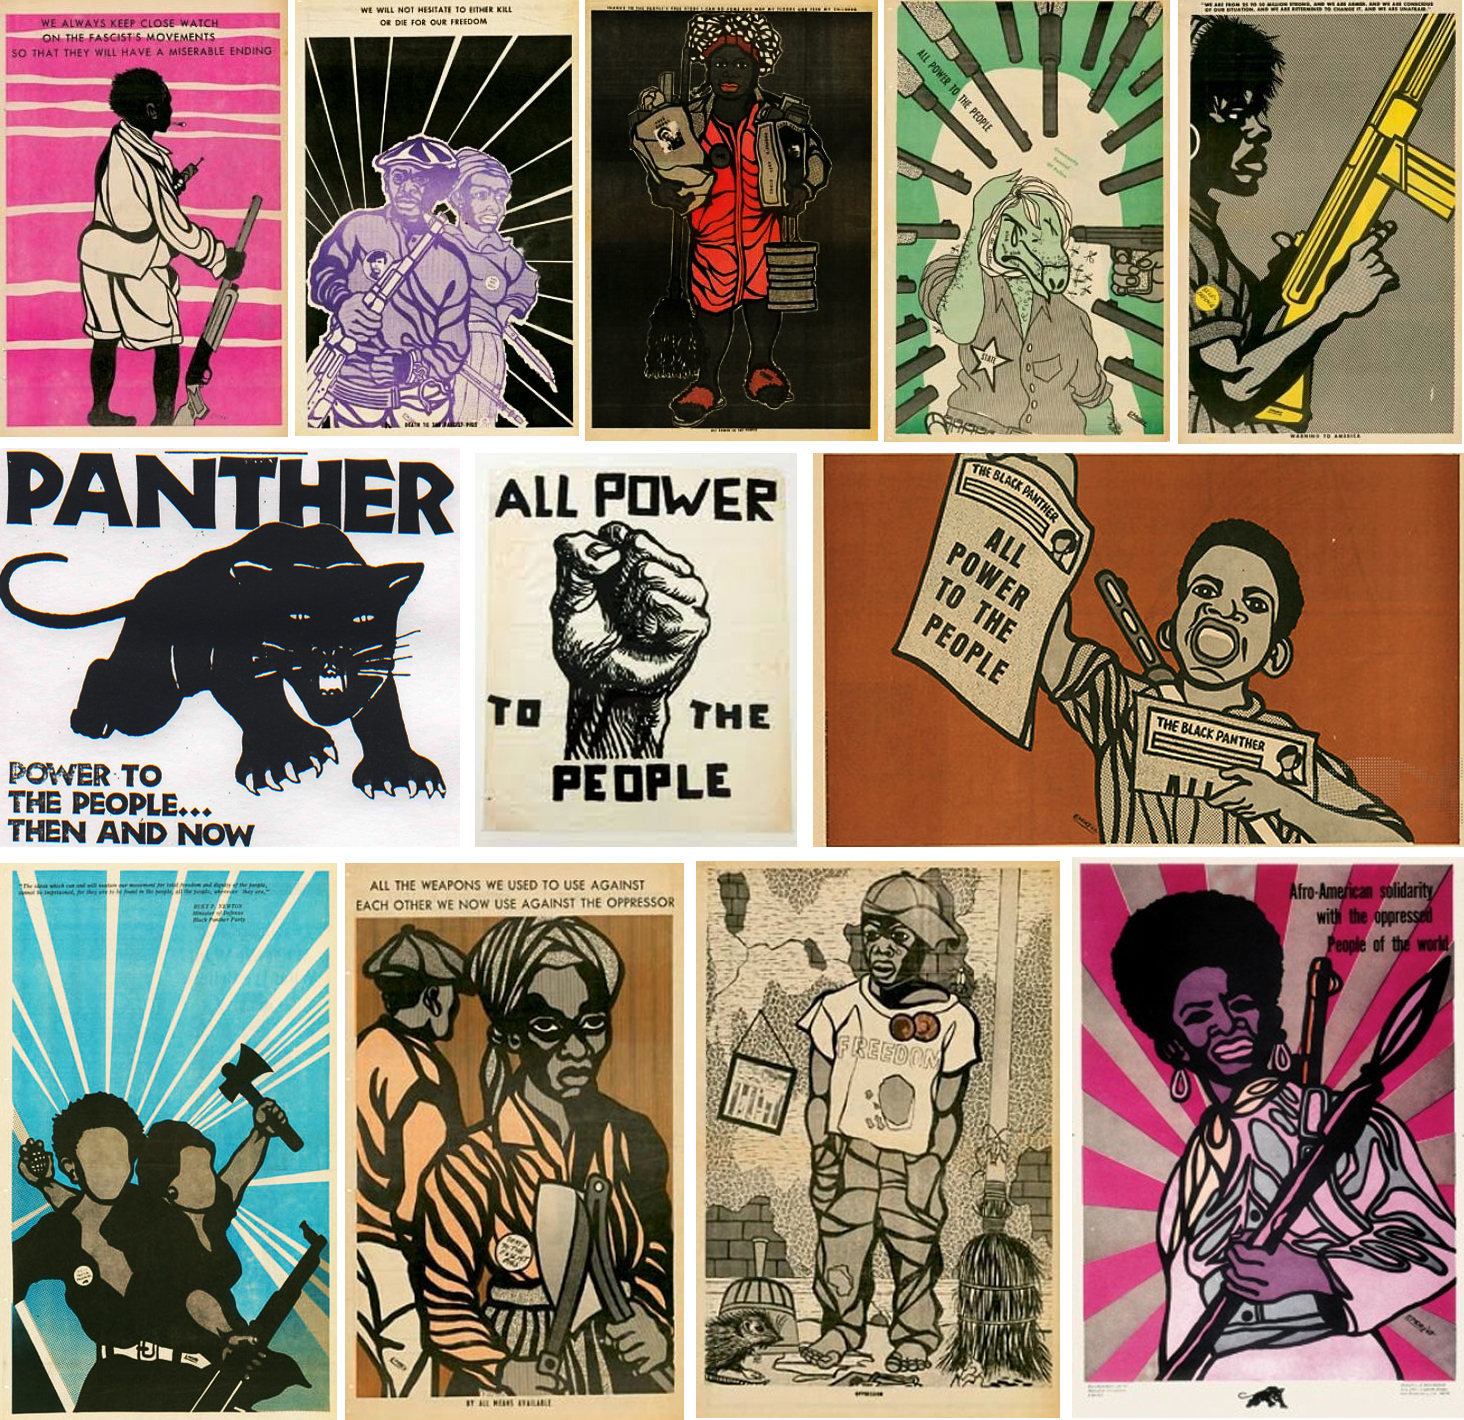 Black Panthers por Emory Douglas (de 1970 a 1982)